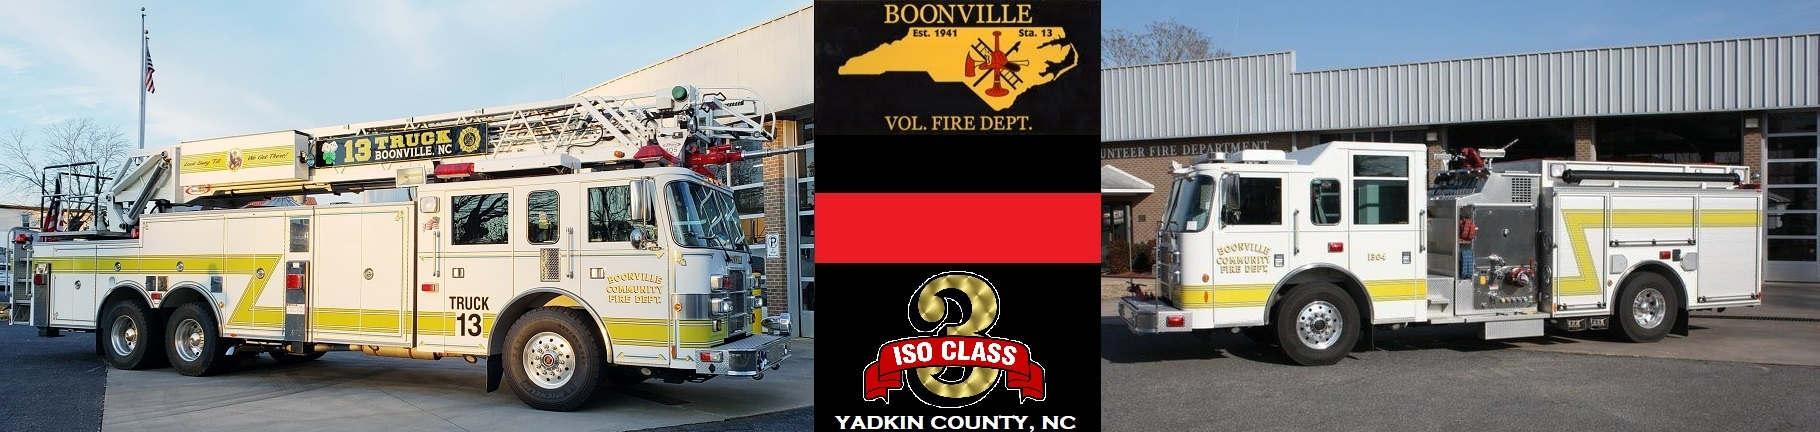 Boonville Volunteer Fire Department